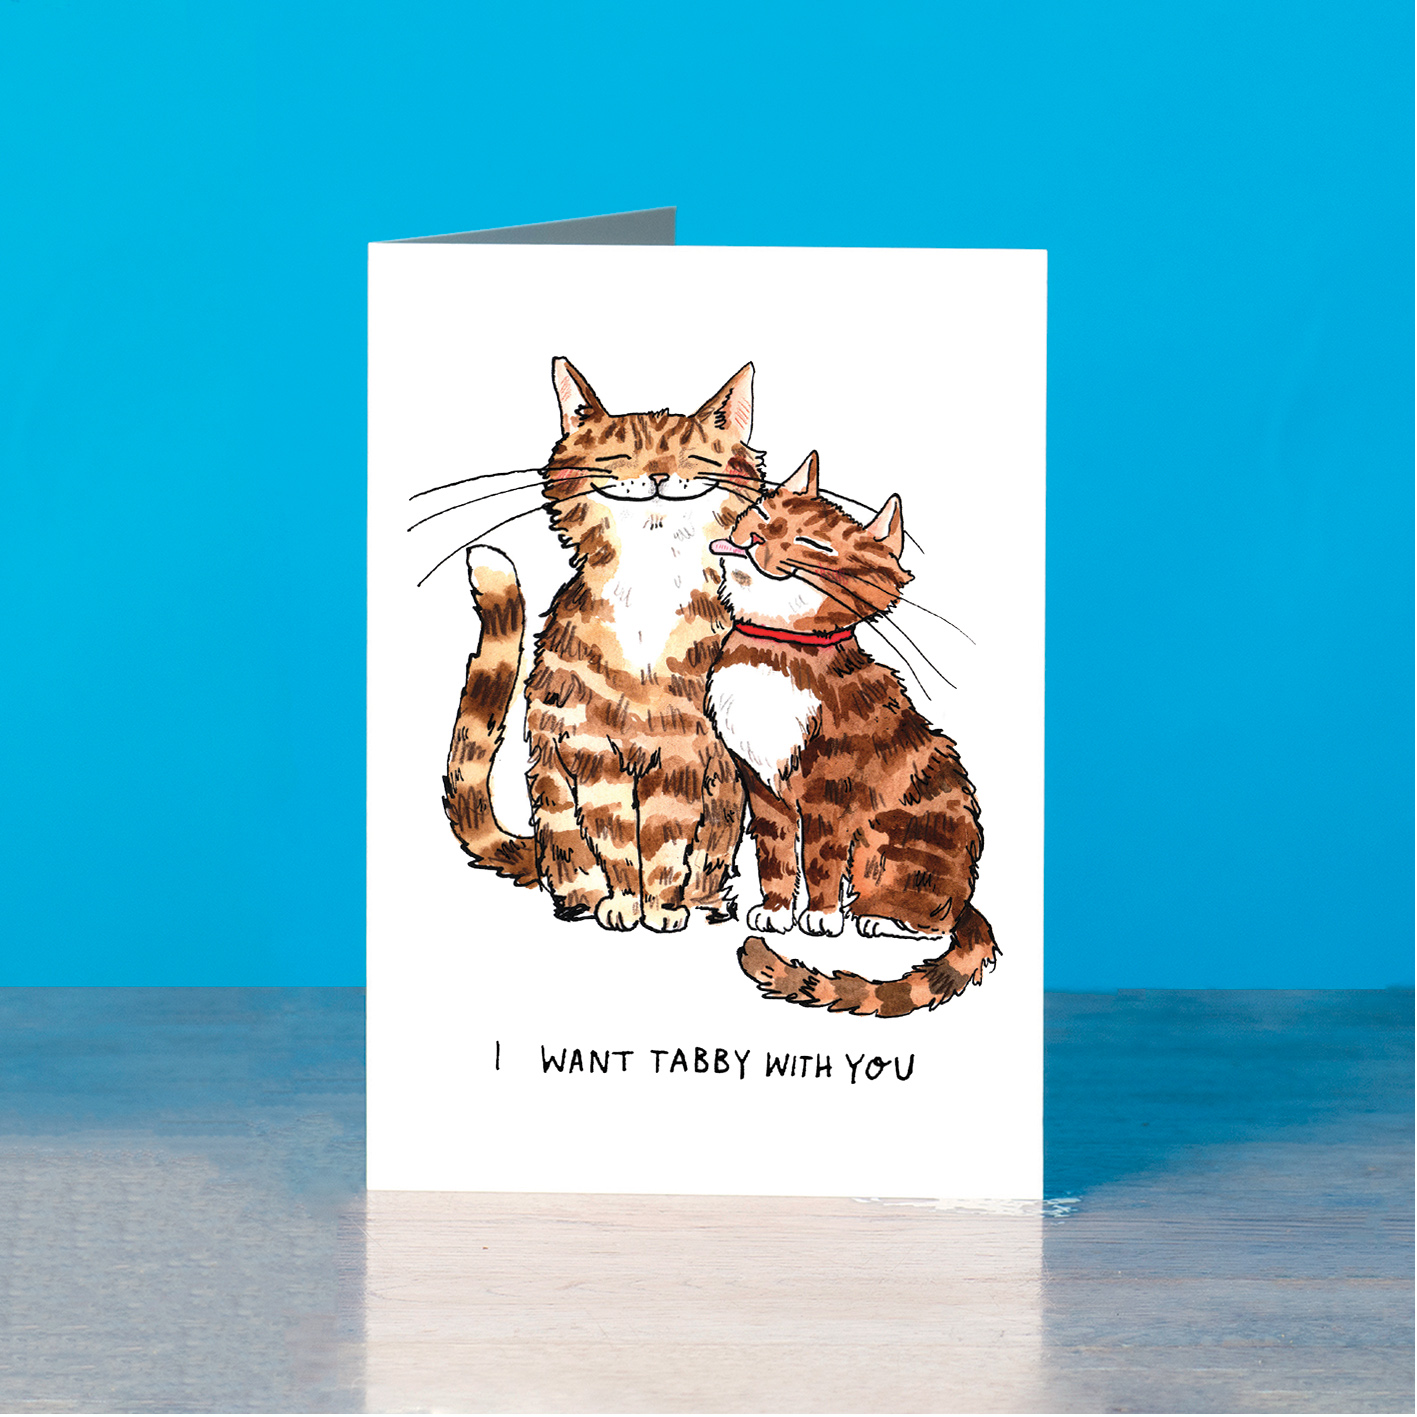 Want-Tabby-With-You_-Cat-pun-romantic-greetings-card_SM70_OT